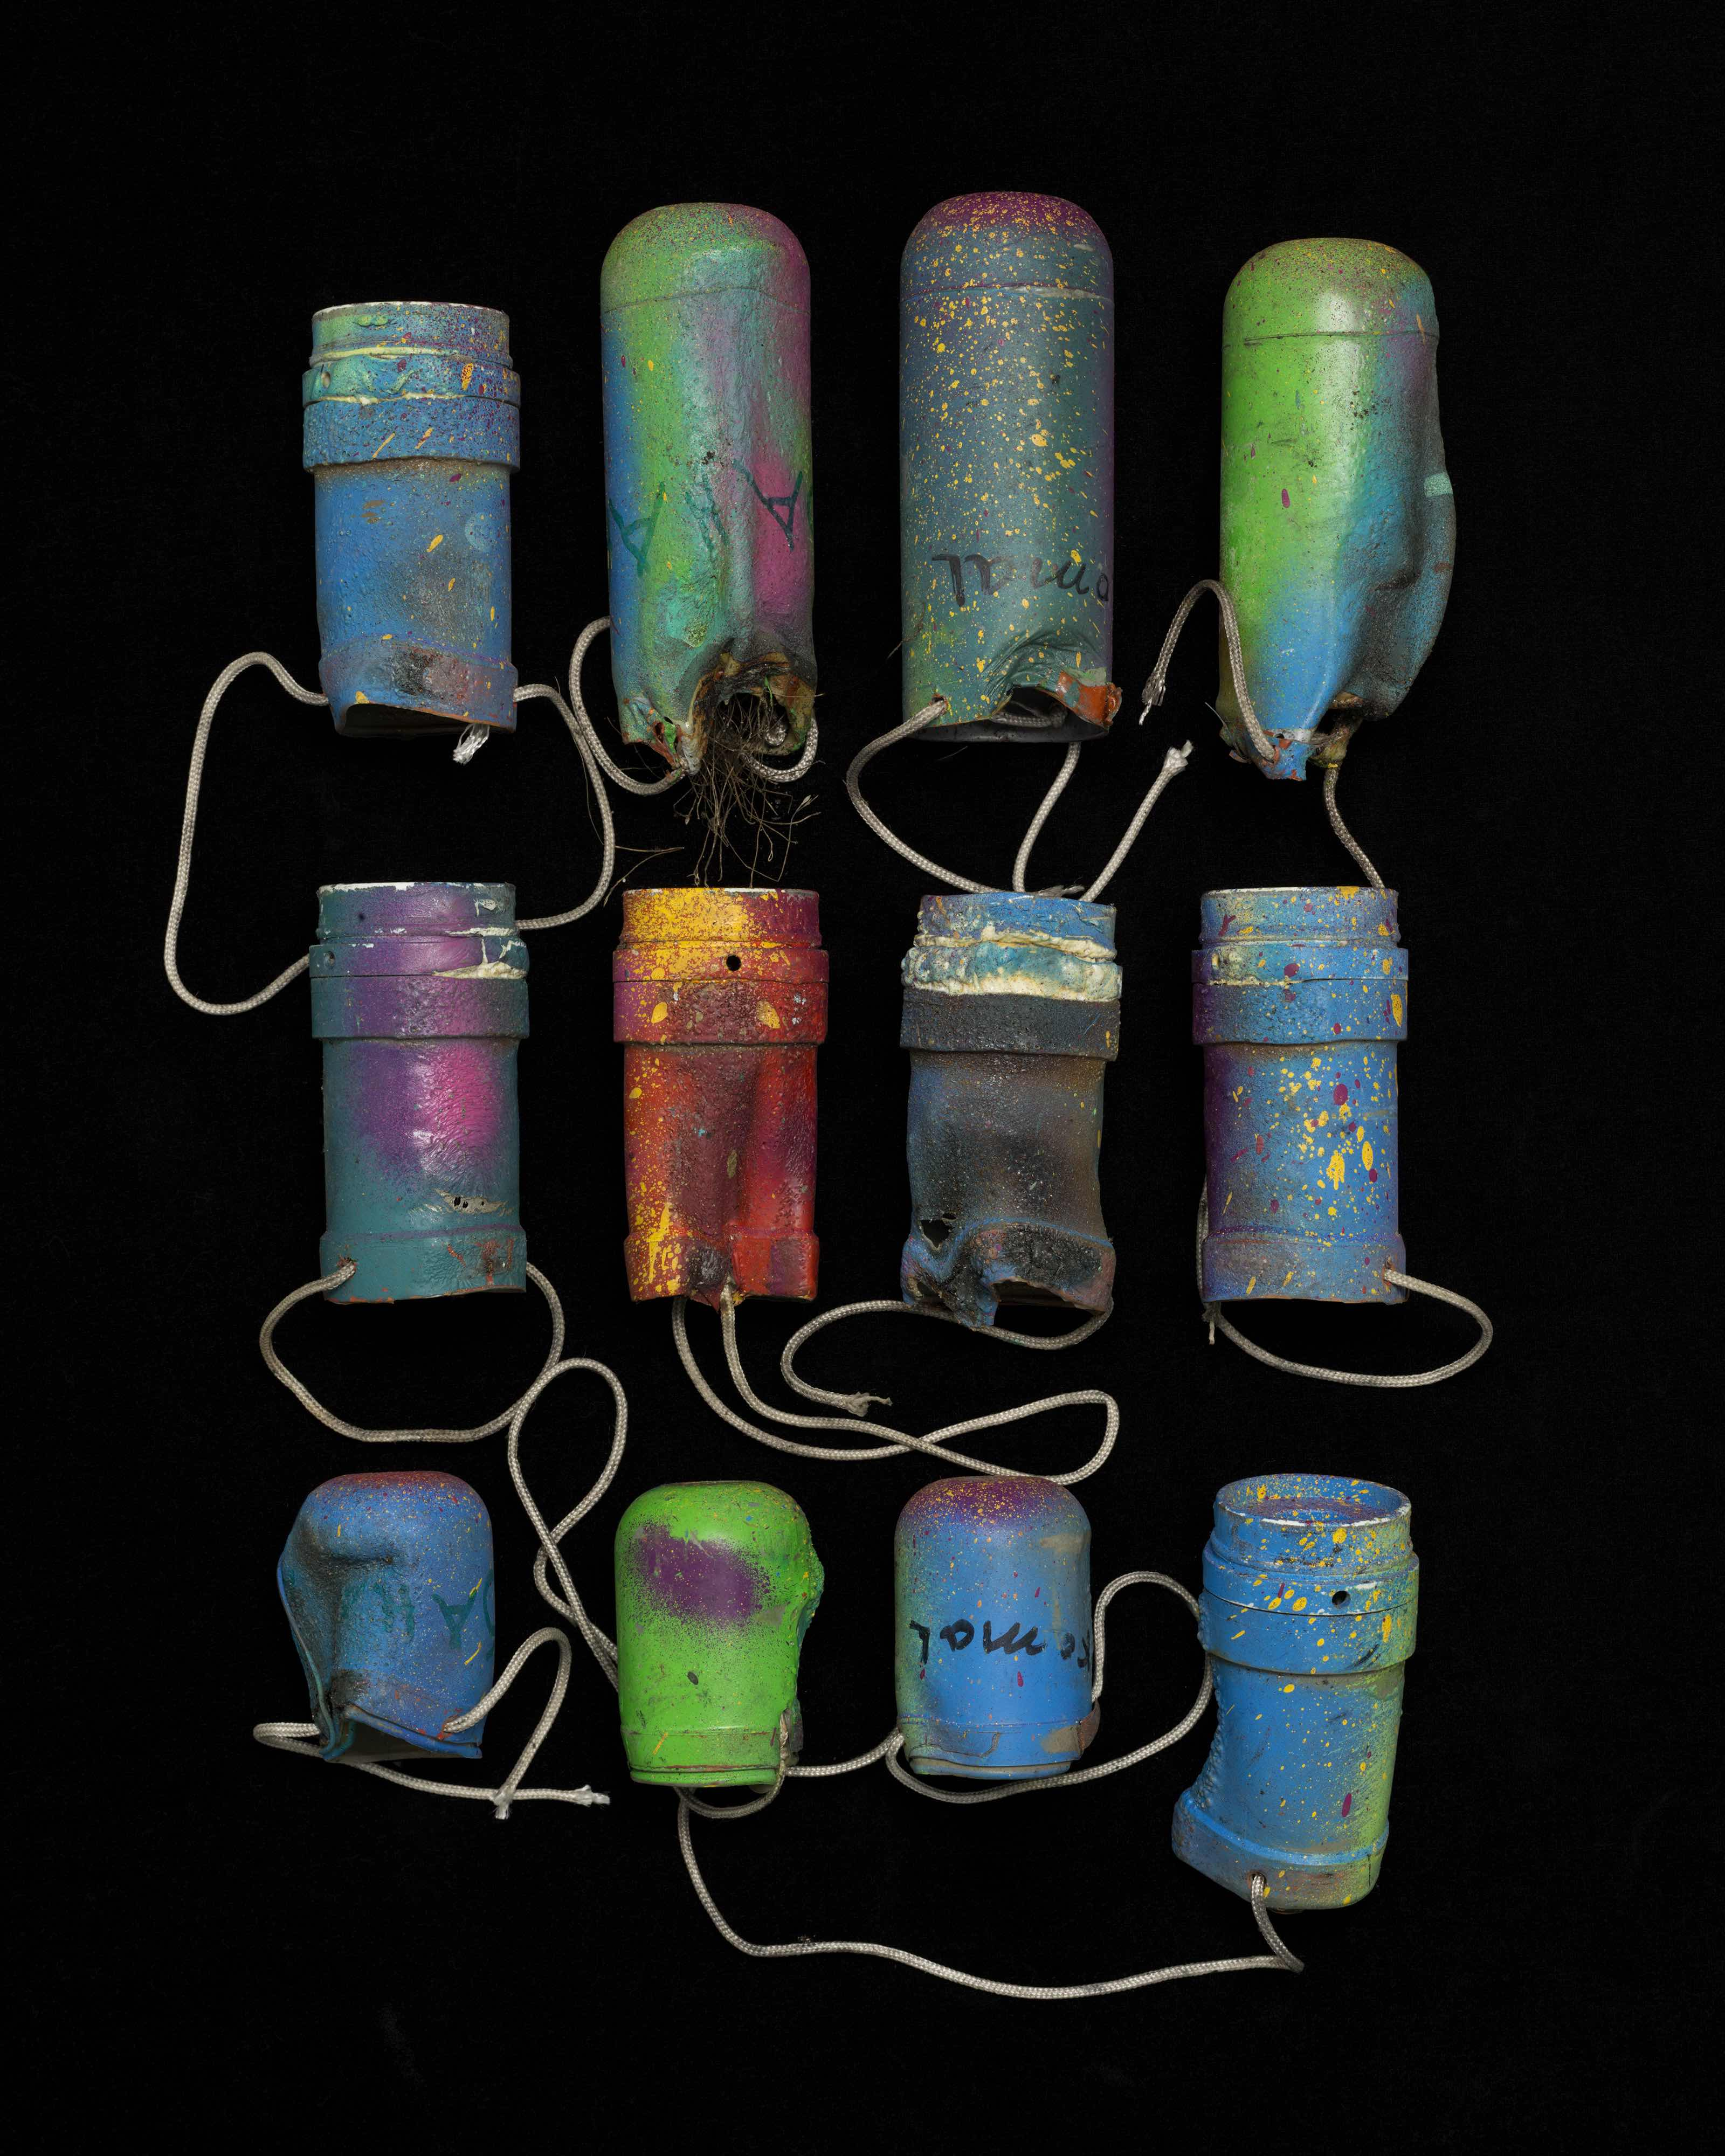 Decorated tear gas canisters Collected 28 October 2016 © Gideon Mendel